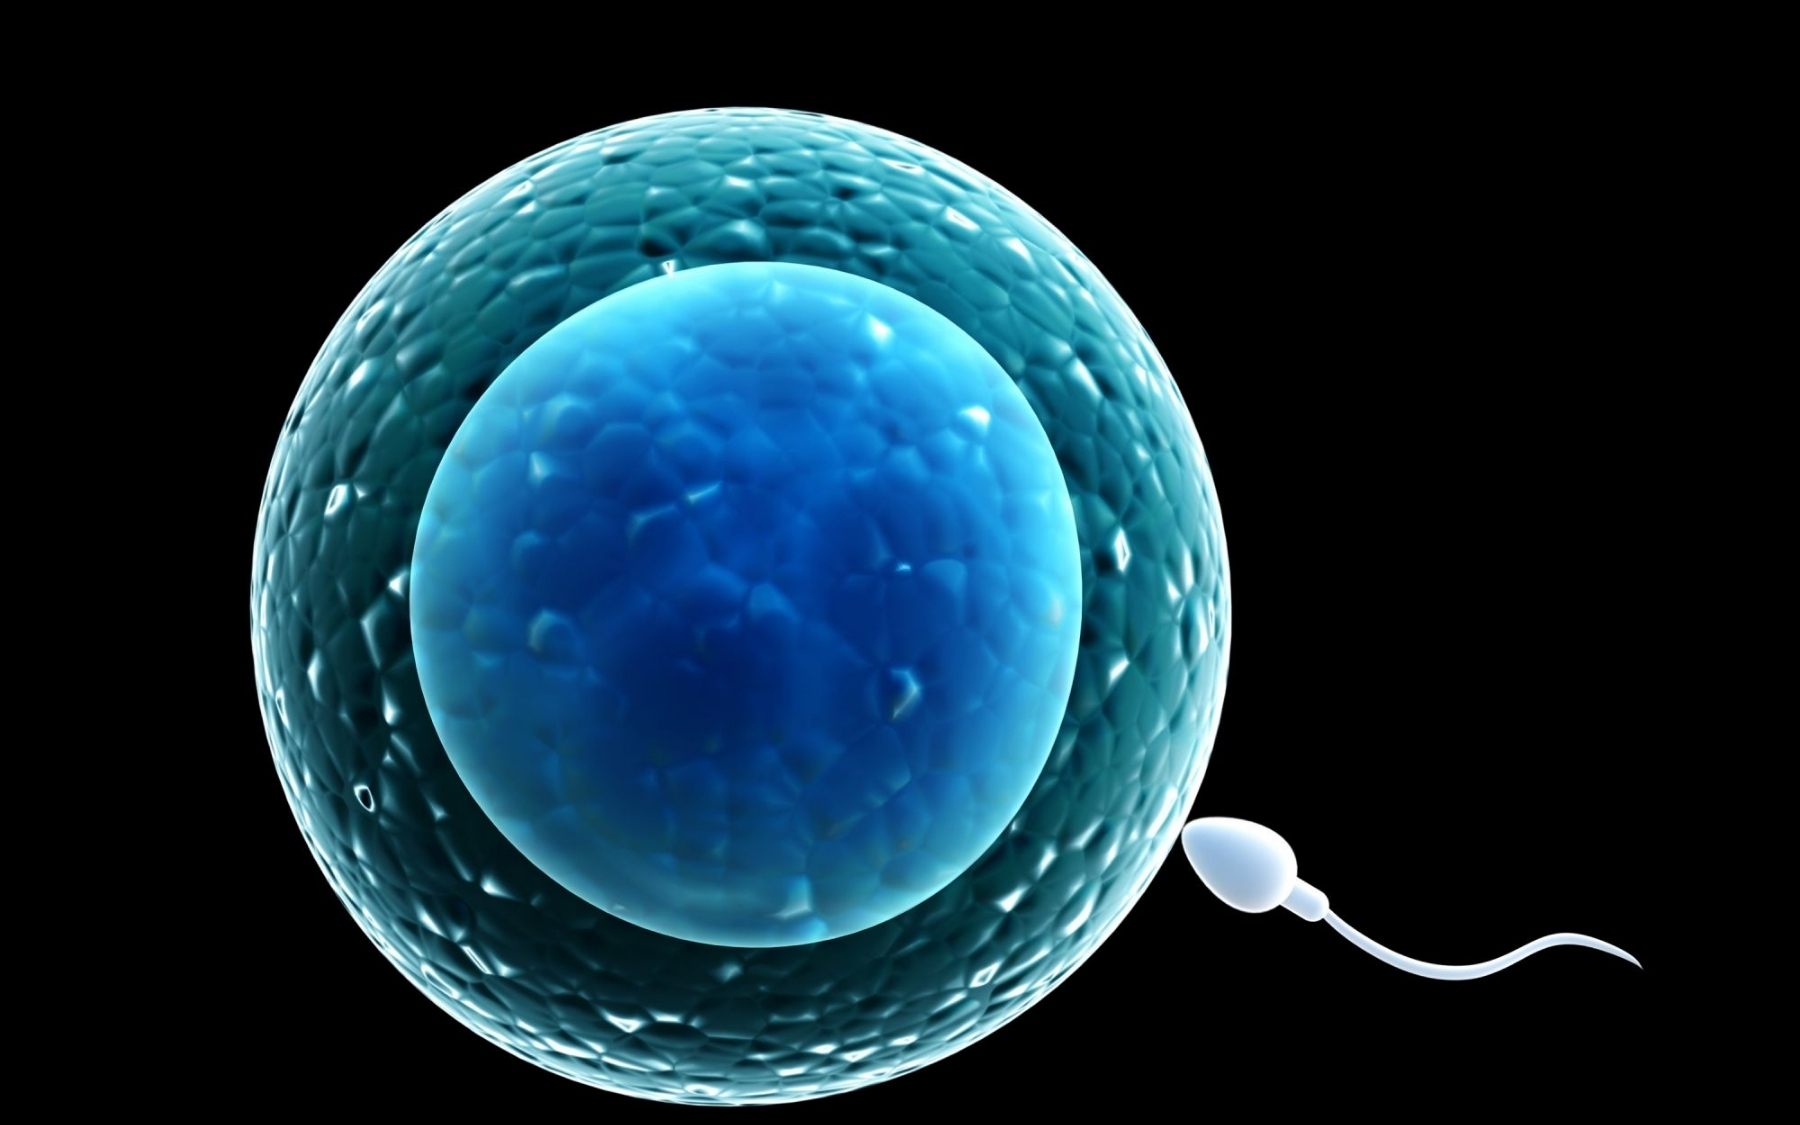 Male Fertility - The last two months